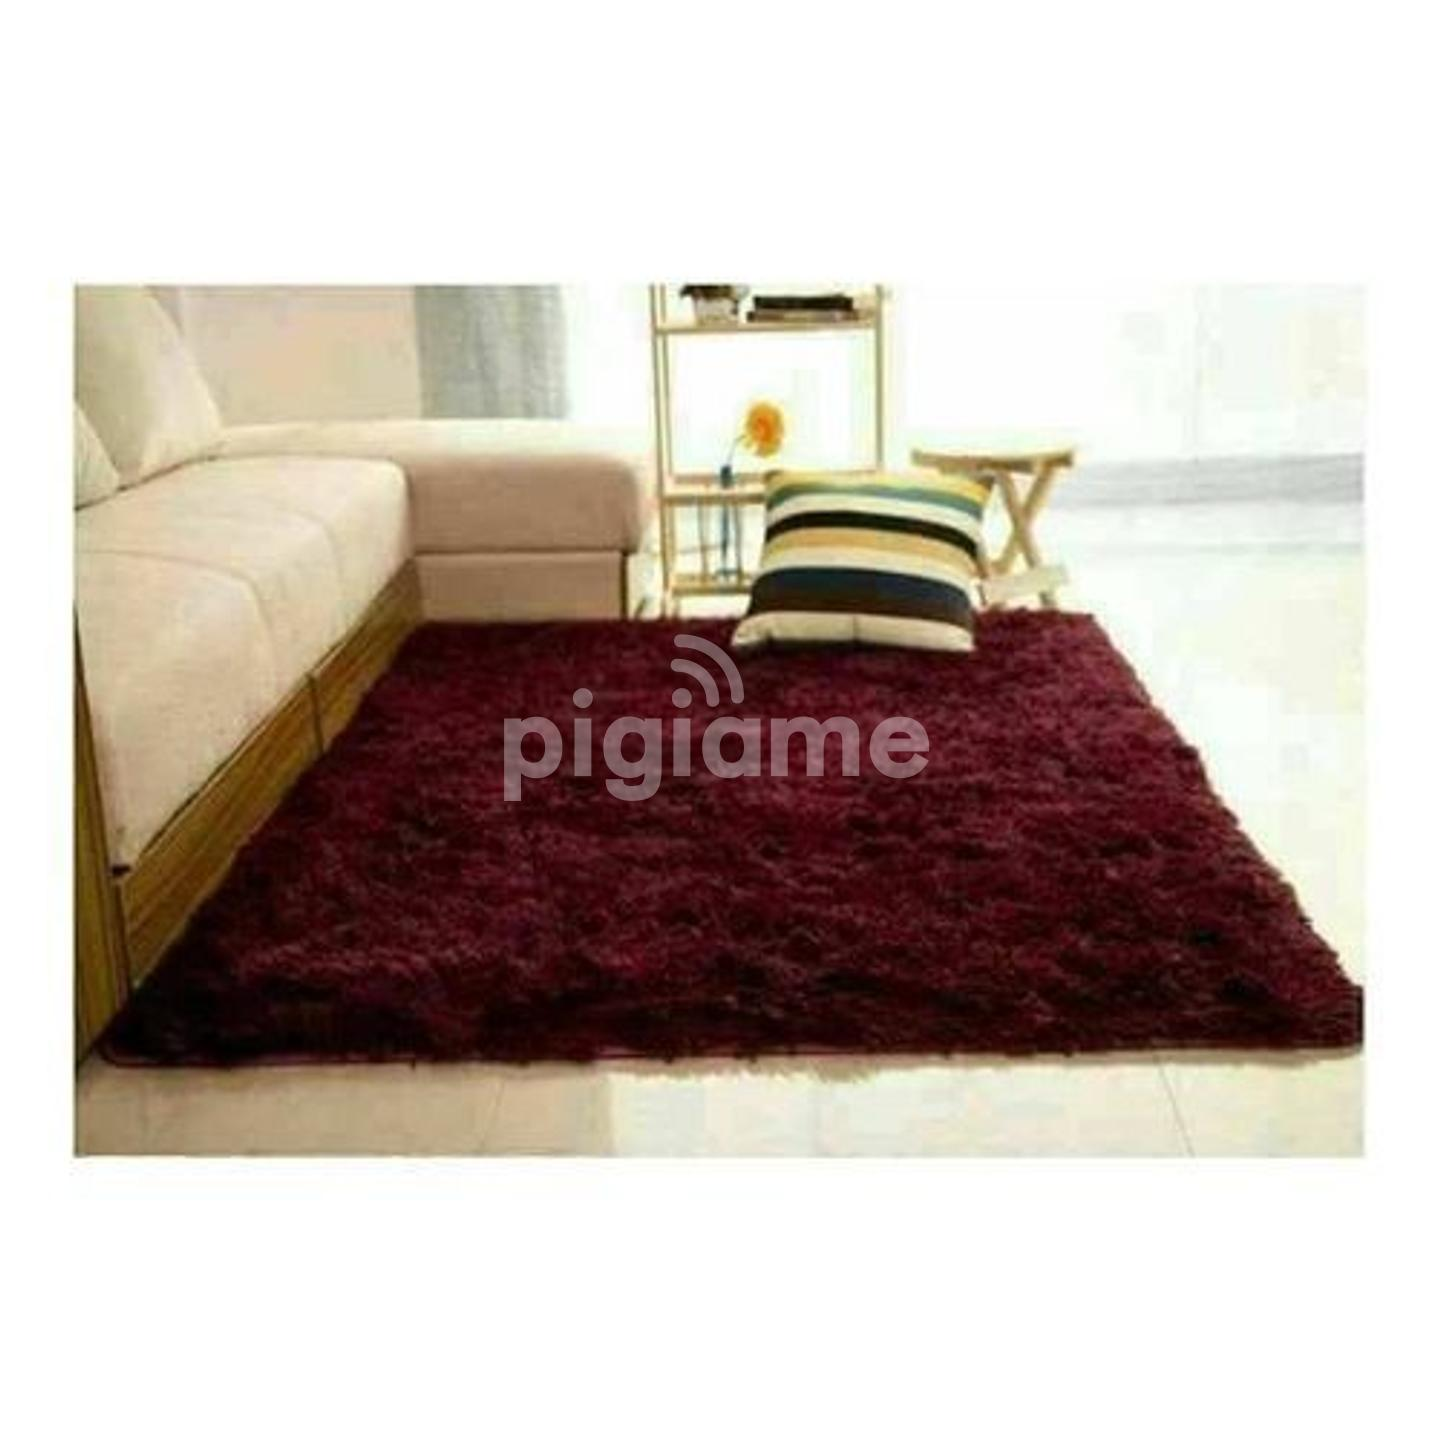 Fluffy Smooth Carpet For Living Room Maroon In Nairobi Pigiame